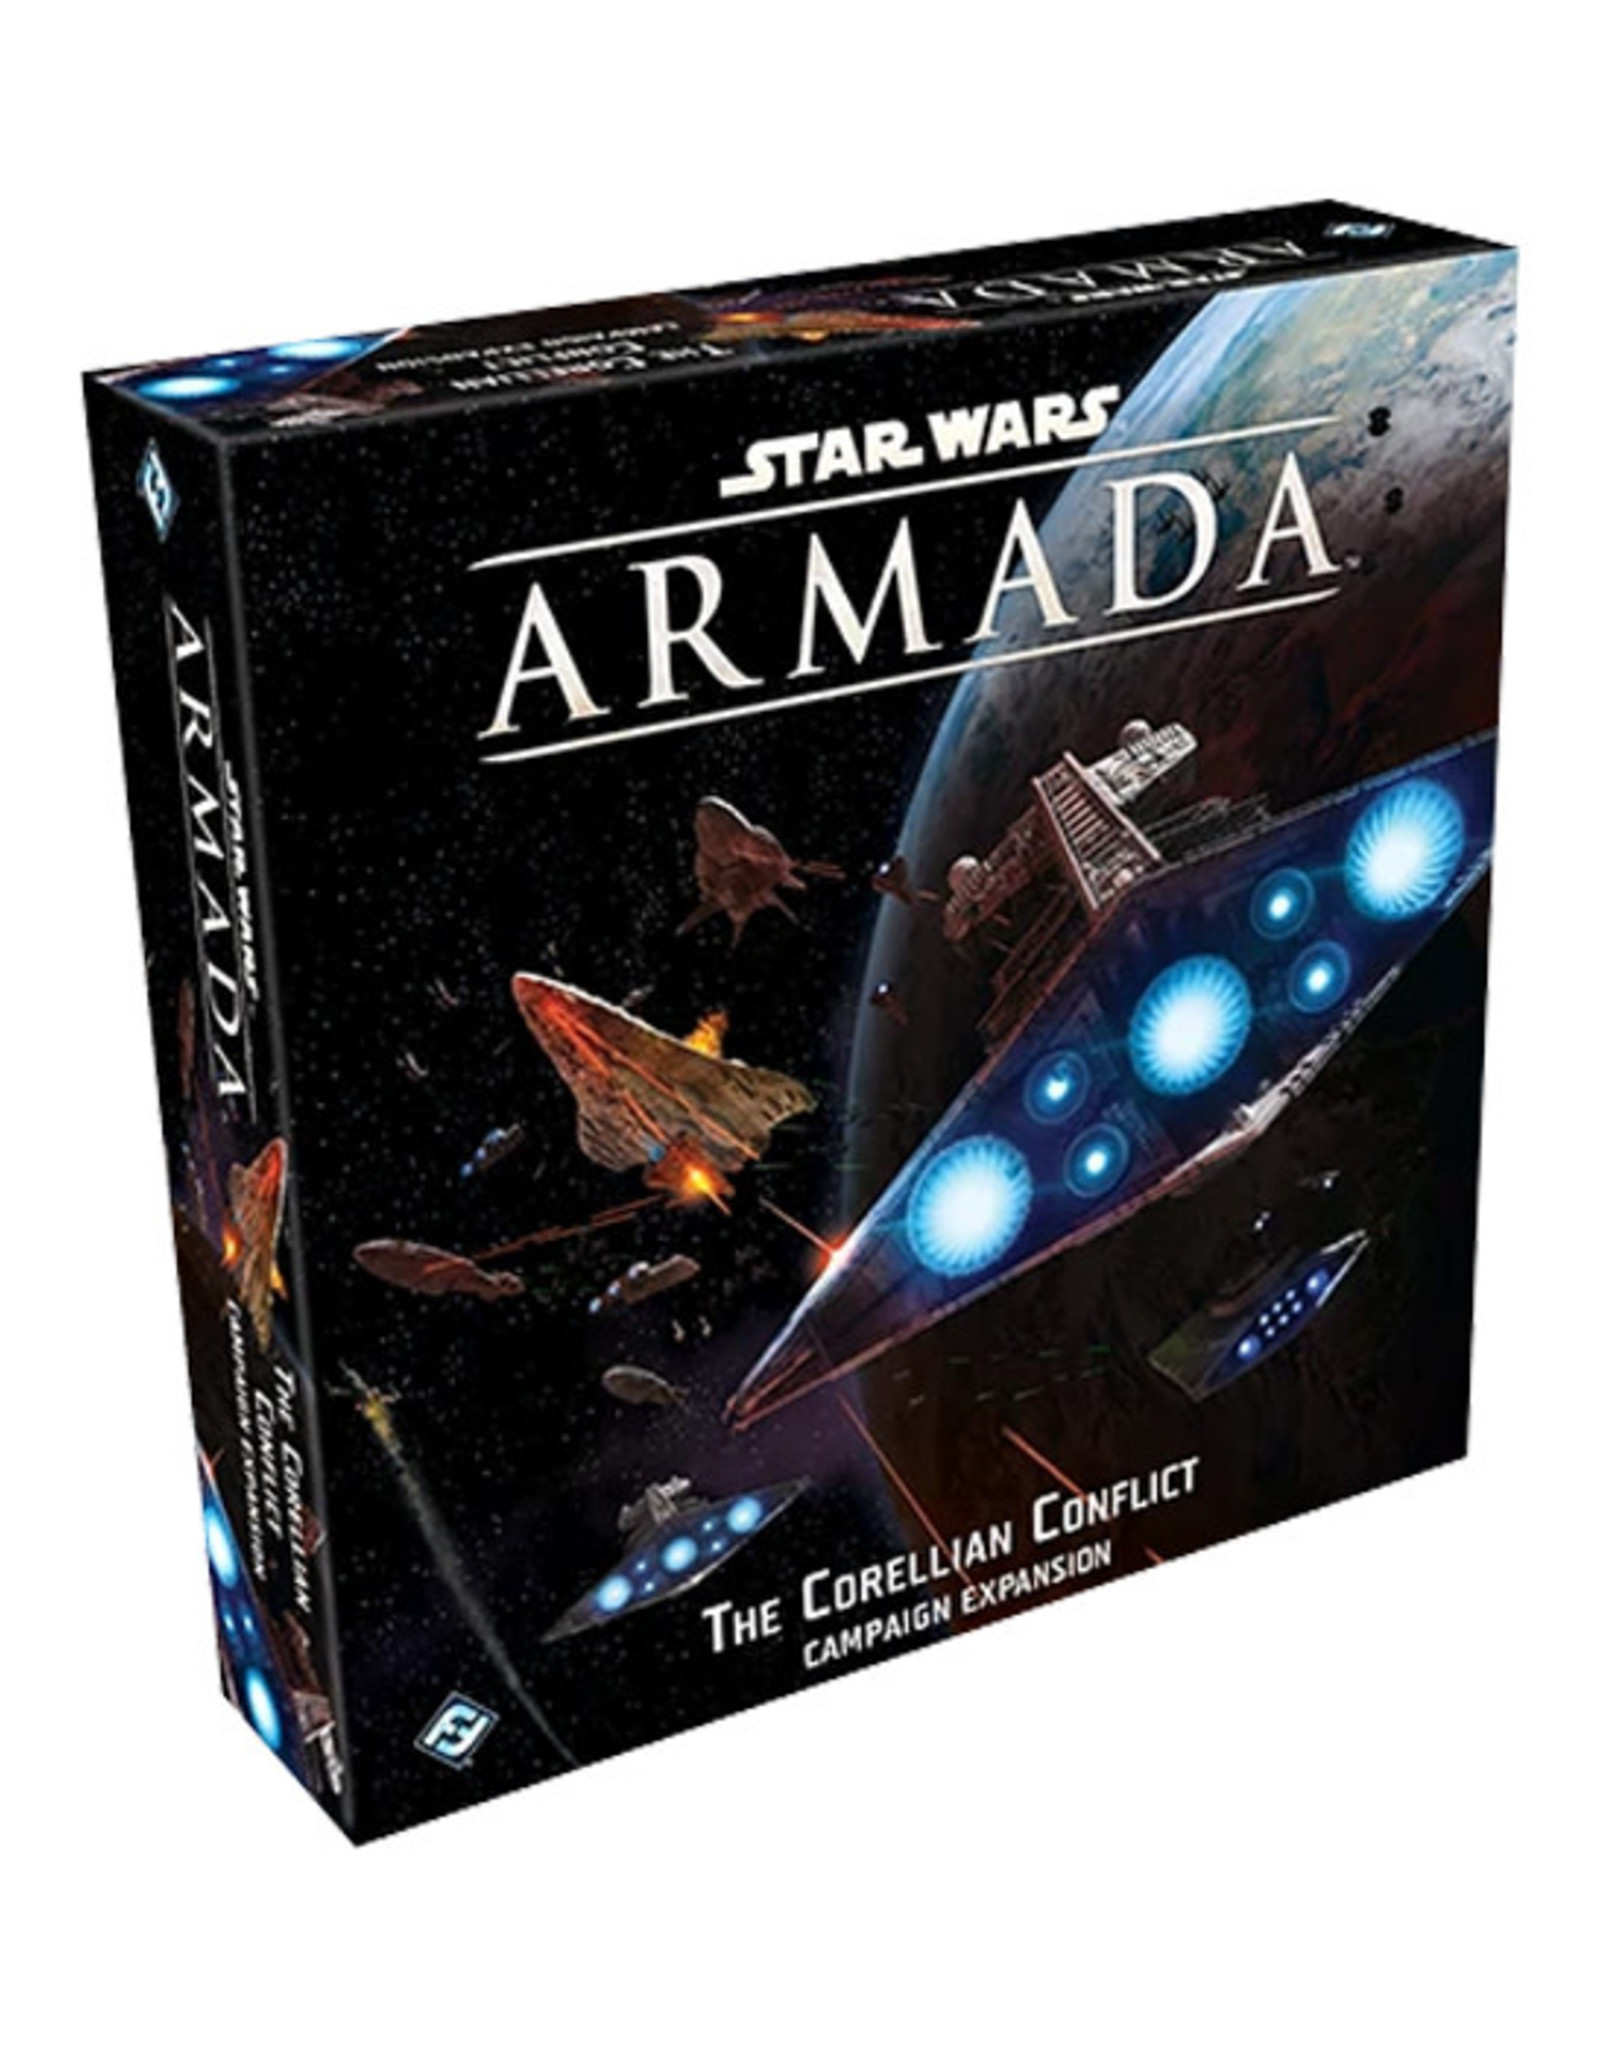 Fantasy Flight Games Star Wars: Armada - Campaign Expansion - The Corellian Conflict